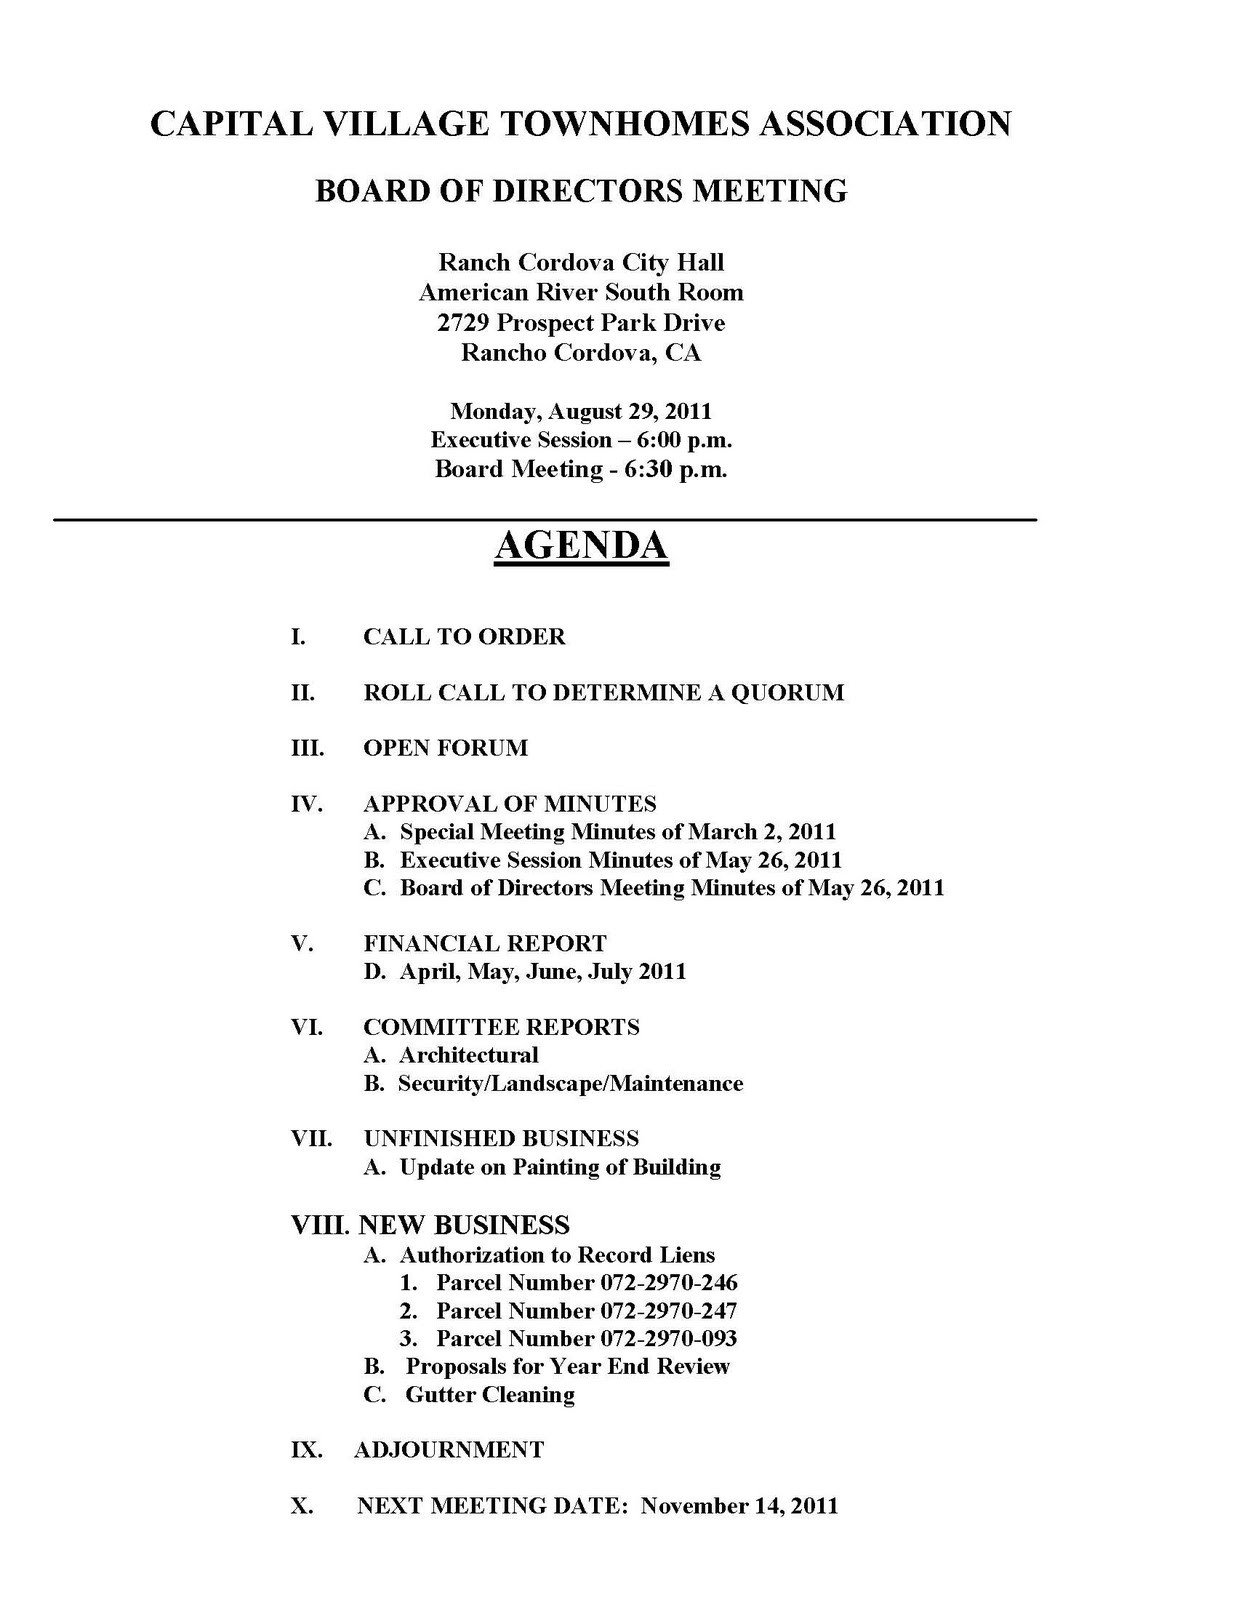 Hoa Meeting Minutes Template Capital Village townhome Hoa Board Meeting Monday August